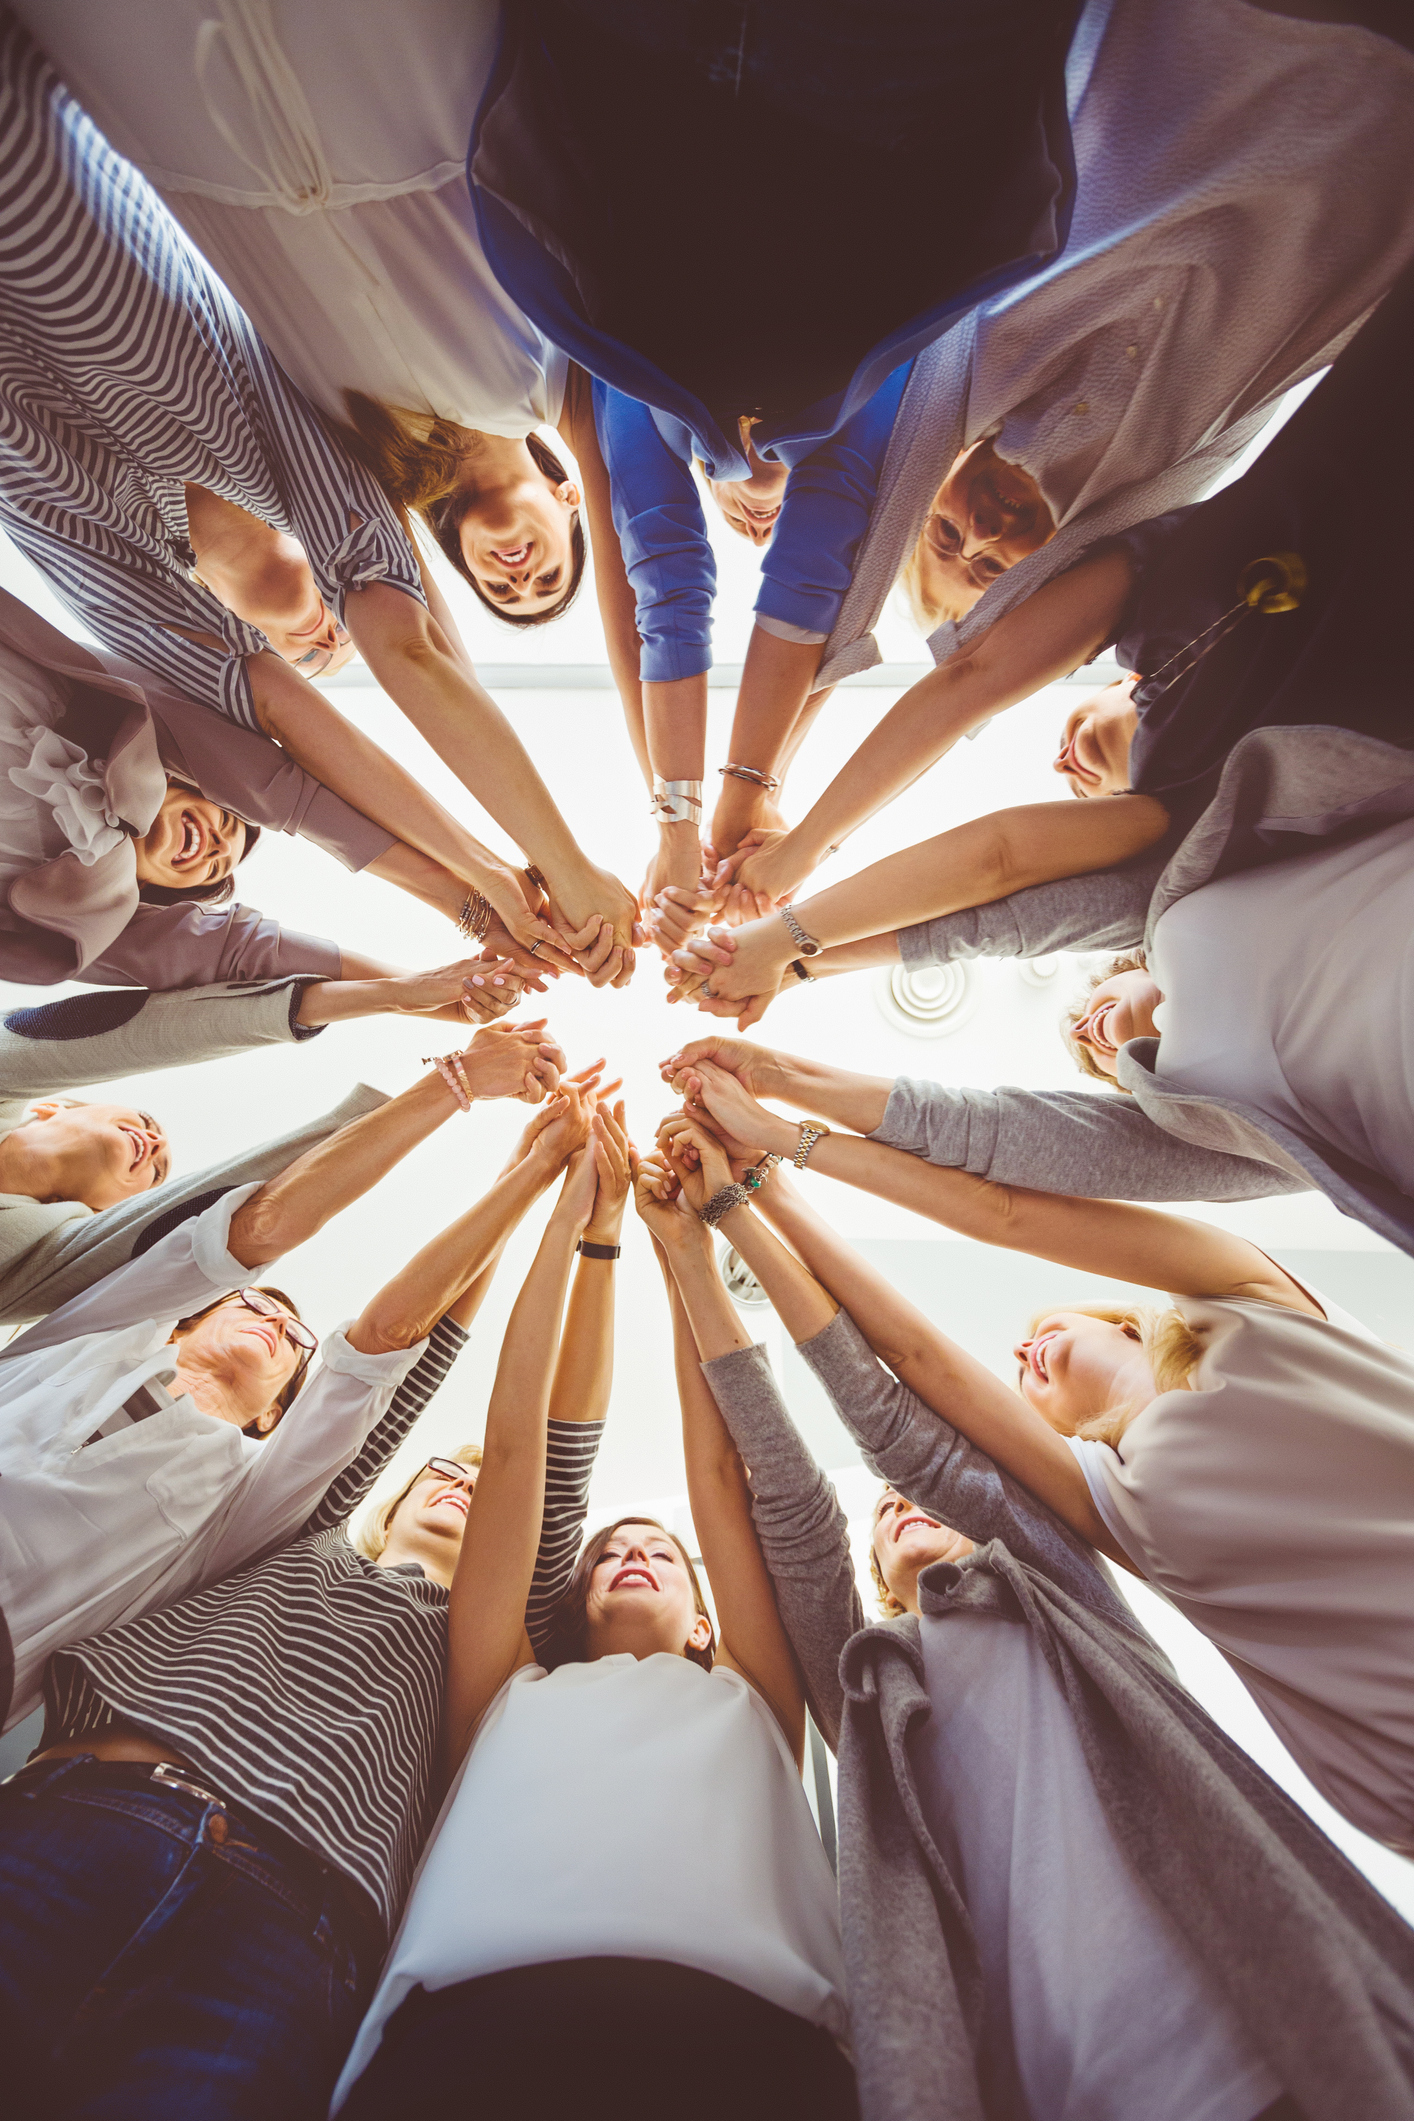 Bring employees together with activities, campaigns and initiatives